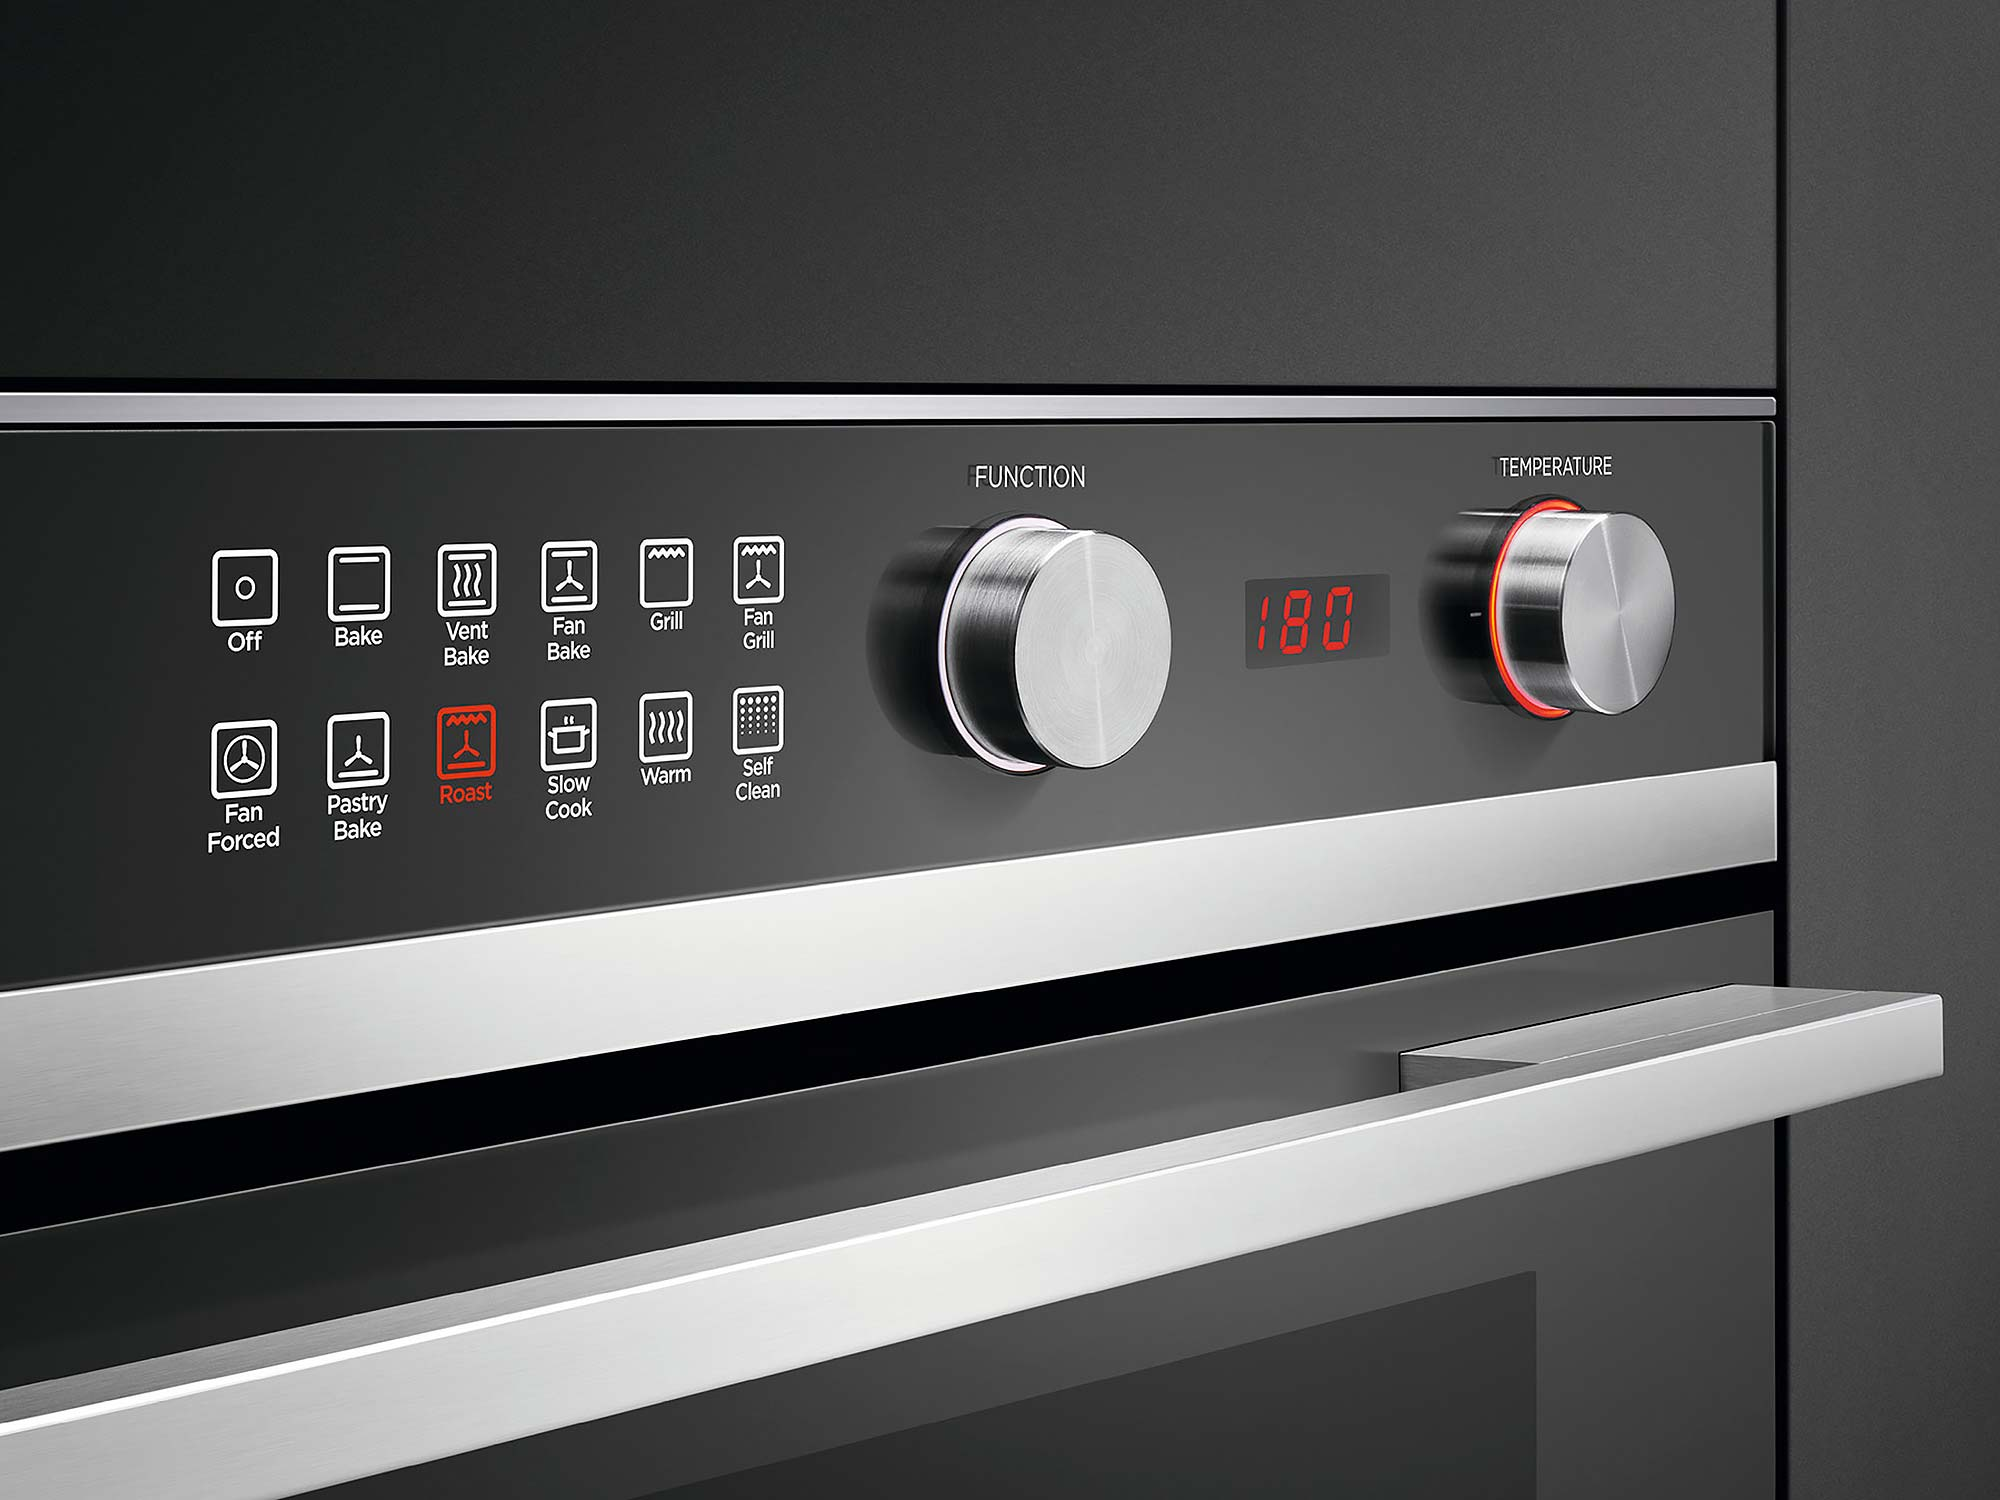 Fisher Paykel pyrolytic wall oven multi-function control panel chrome